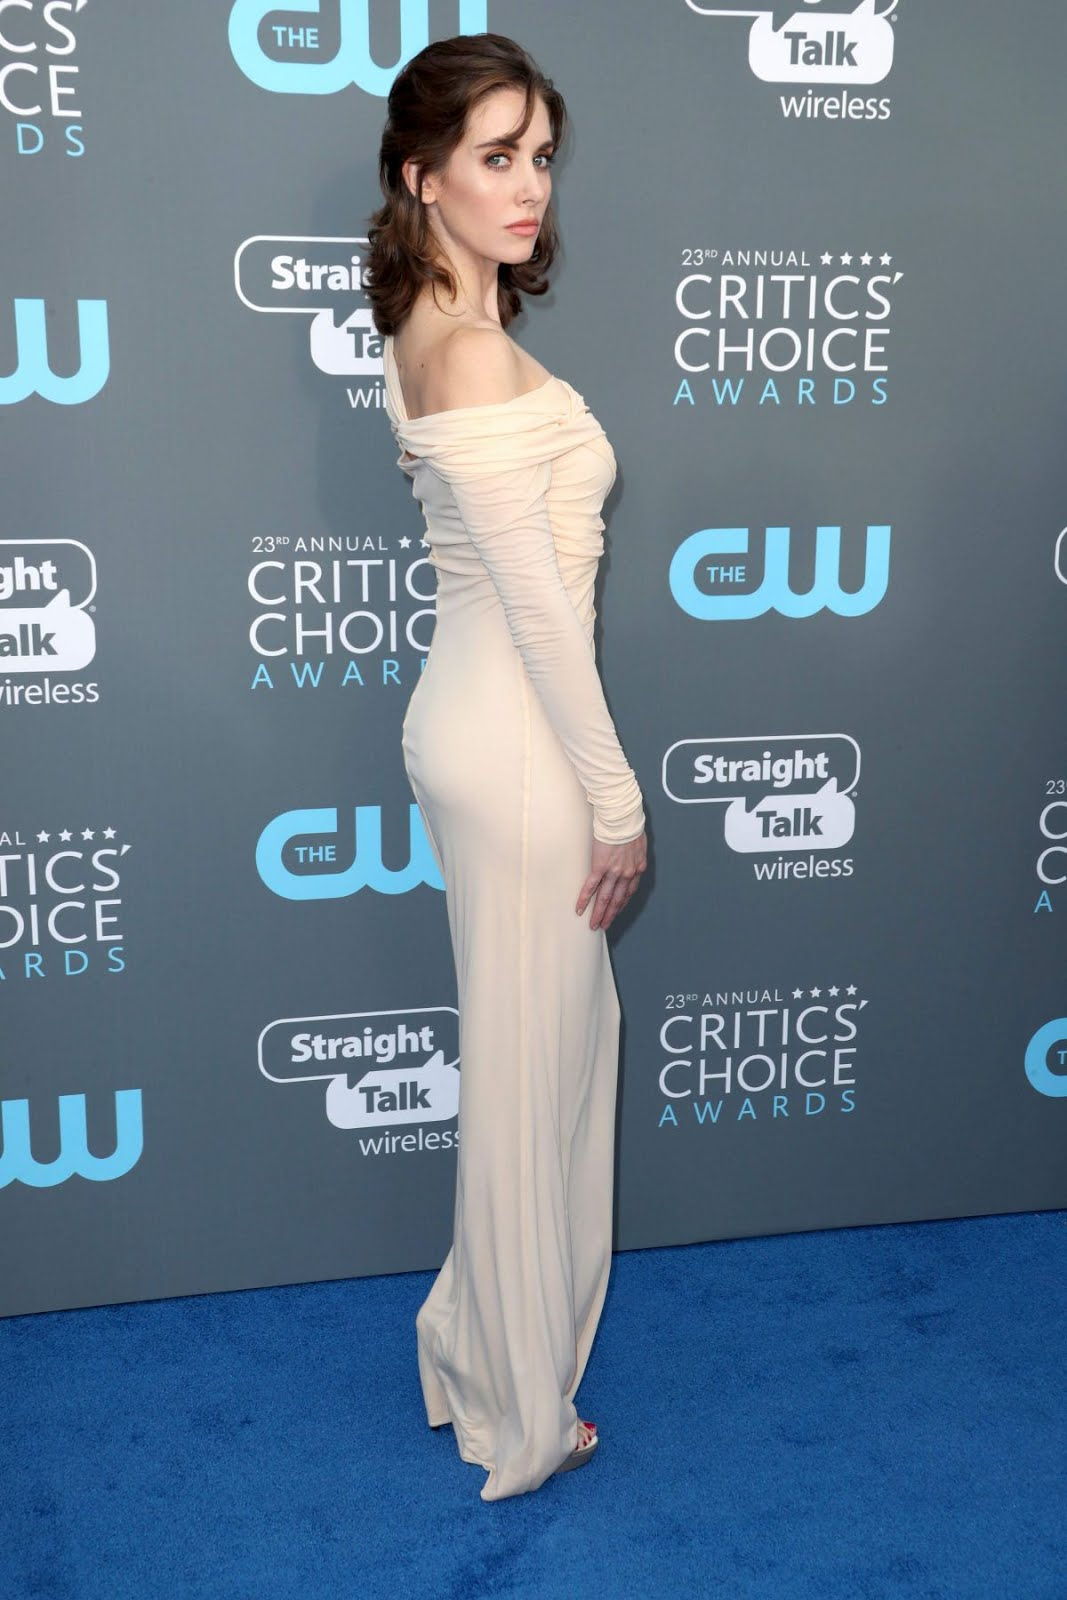 Alison Brie in clingy dress at 2018 critics Choice Awards In Santa Monica